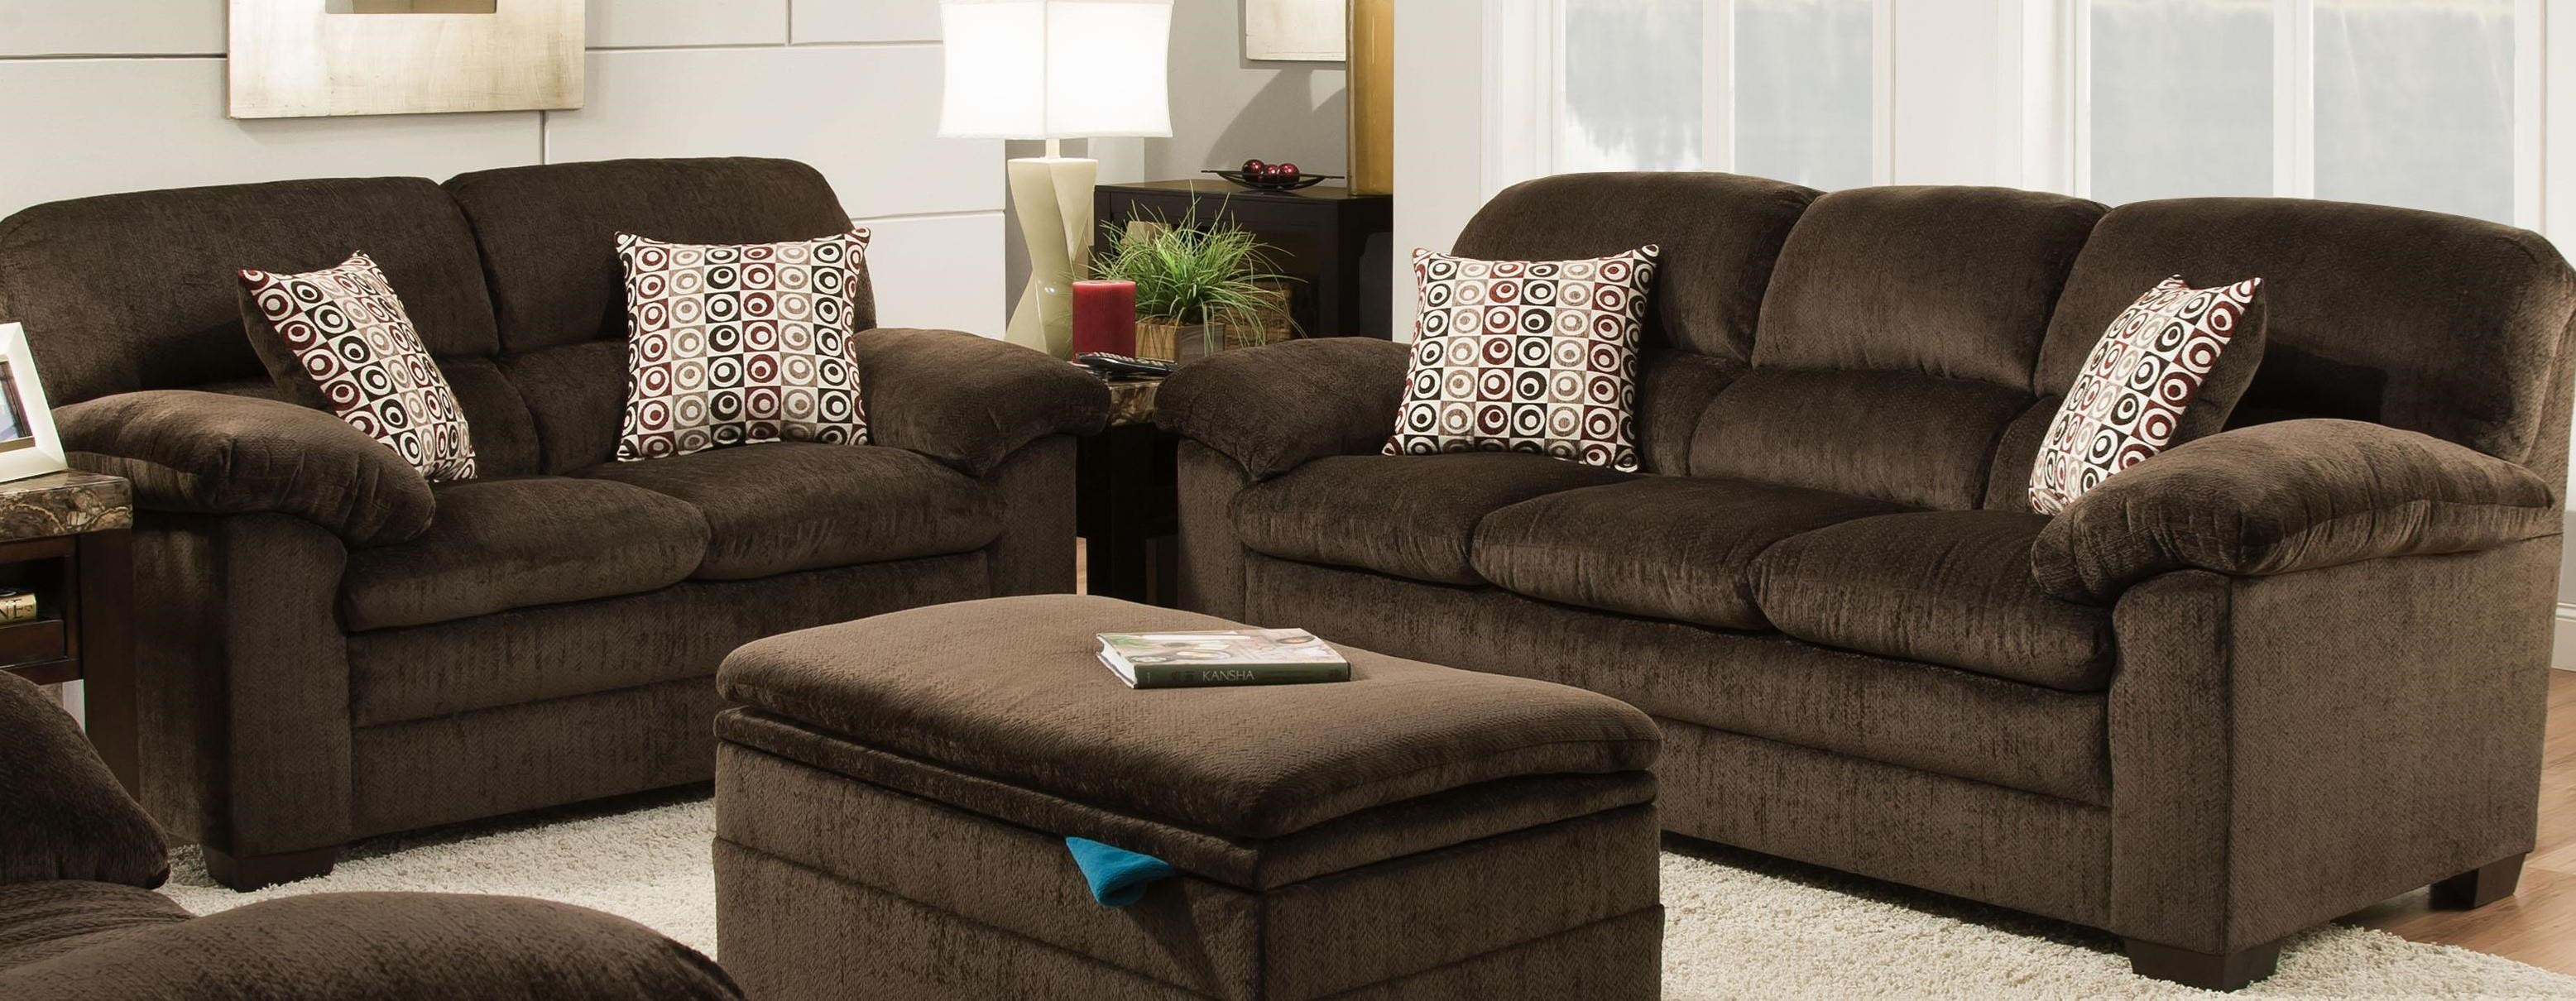 United Furniture Industries 3684 Sofa & Love Seat - Item Number: 3684-SF-Chocolate+3684-LS-Chocolate